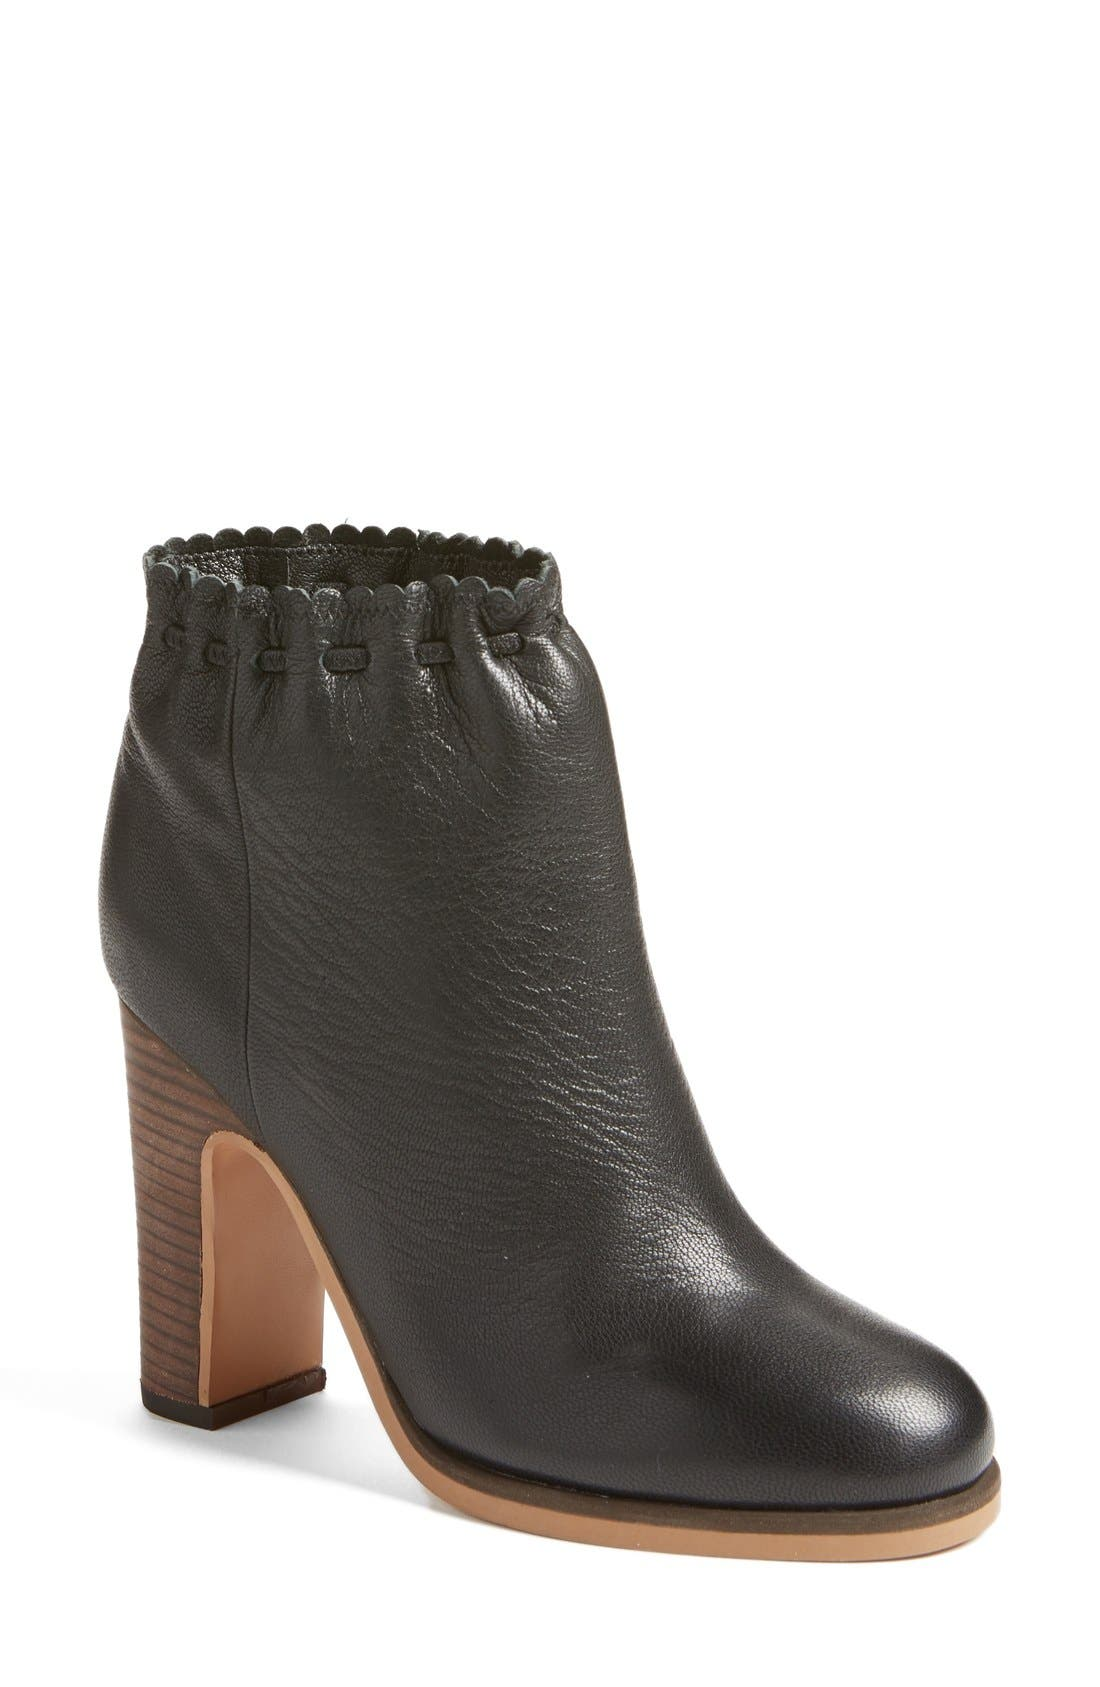 Main Image - See by Chloé 'Jane' Scalloped Bootie (Women)